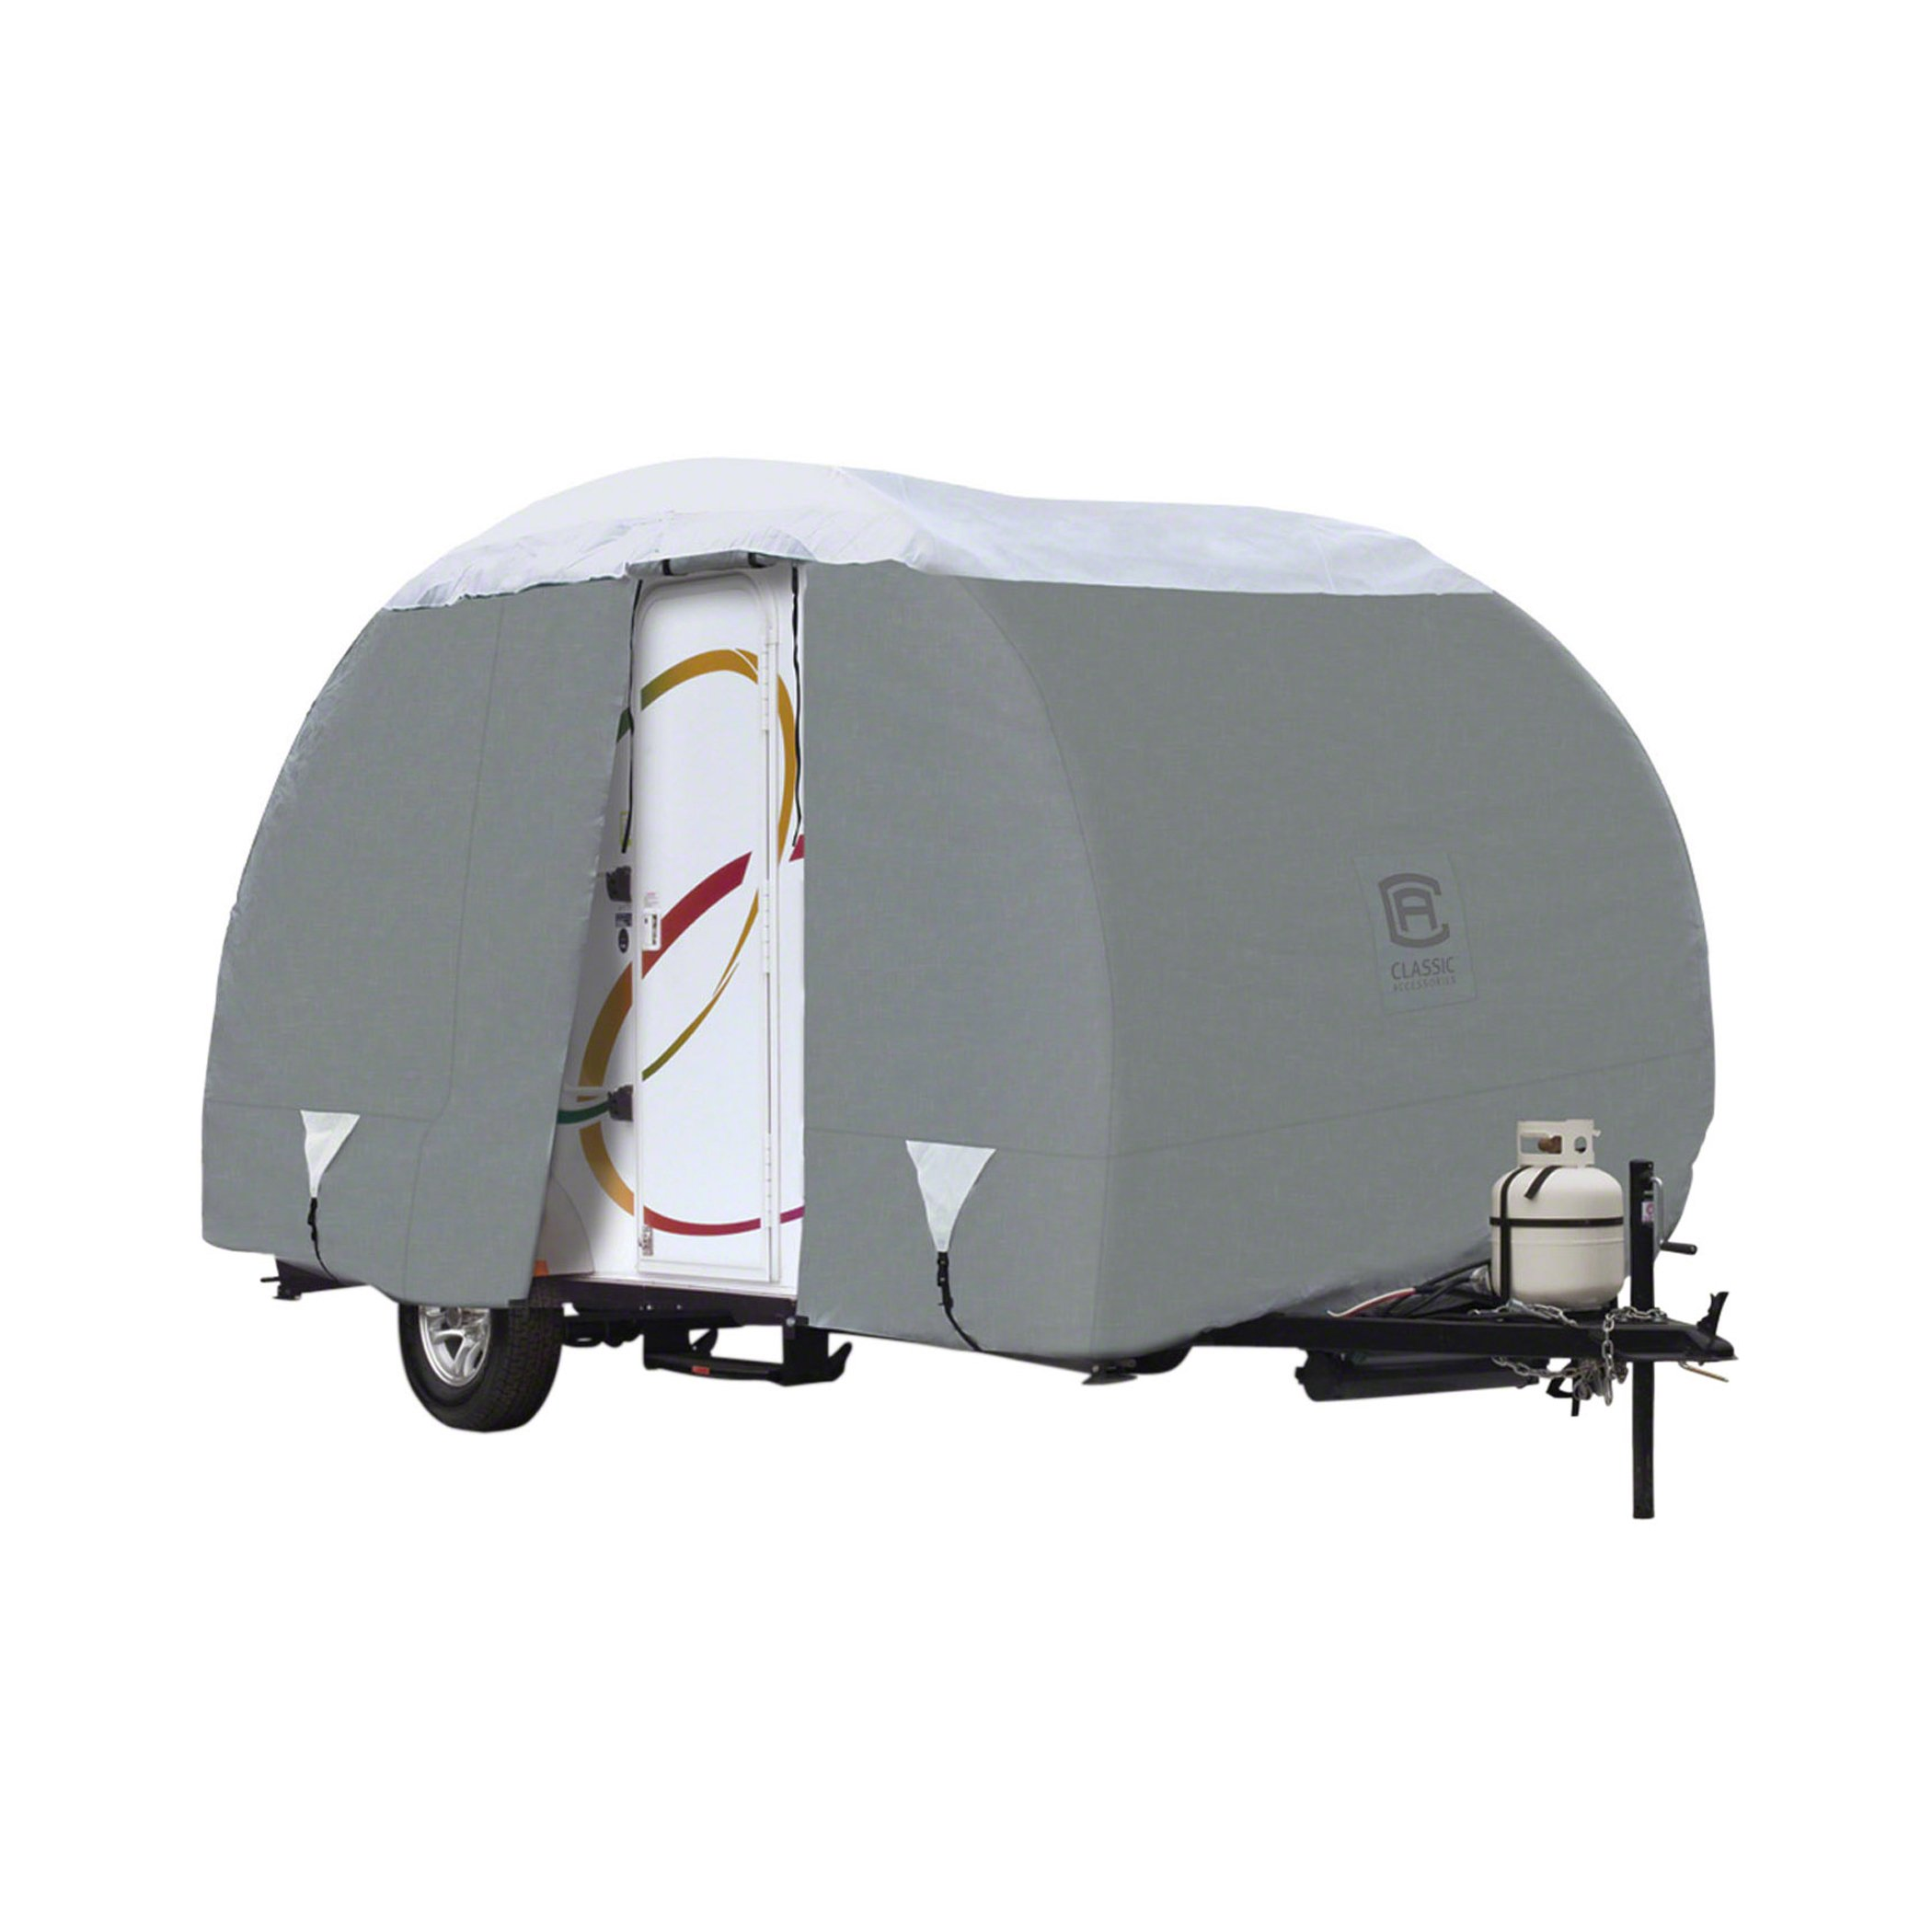 Classic Accessories OverDrive PolyPro 3 Deluxe Teardrop R-Pod Travel Trailer Cover, Model 3 by Classic Accessories